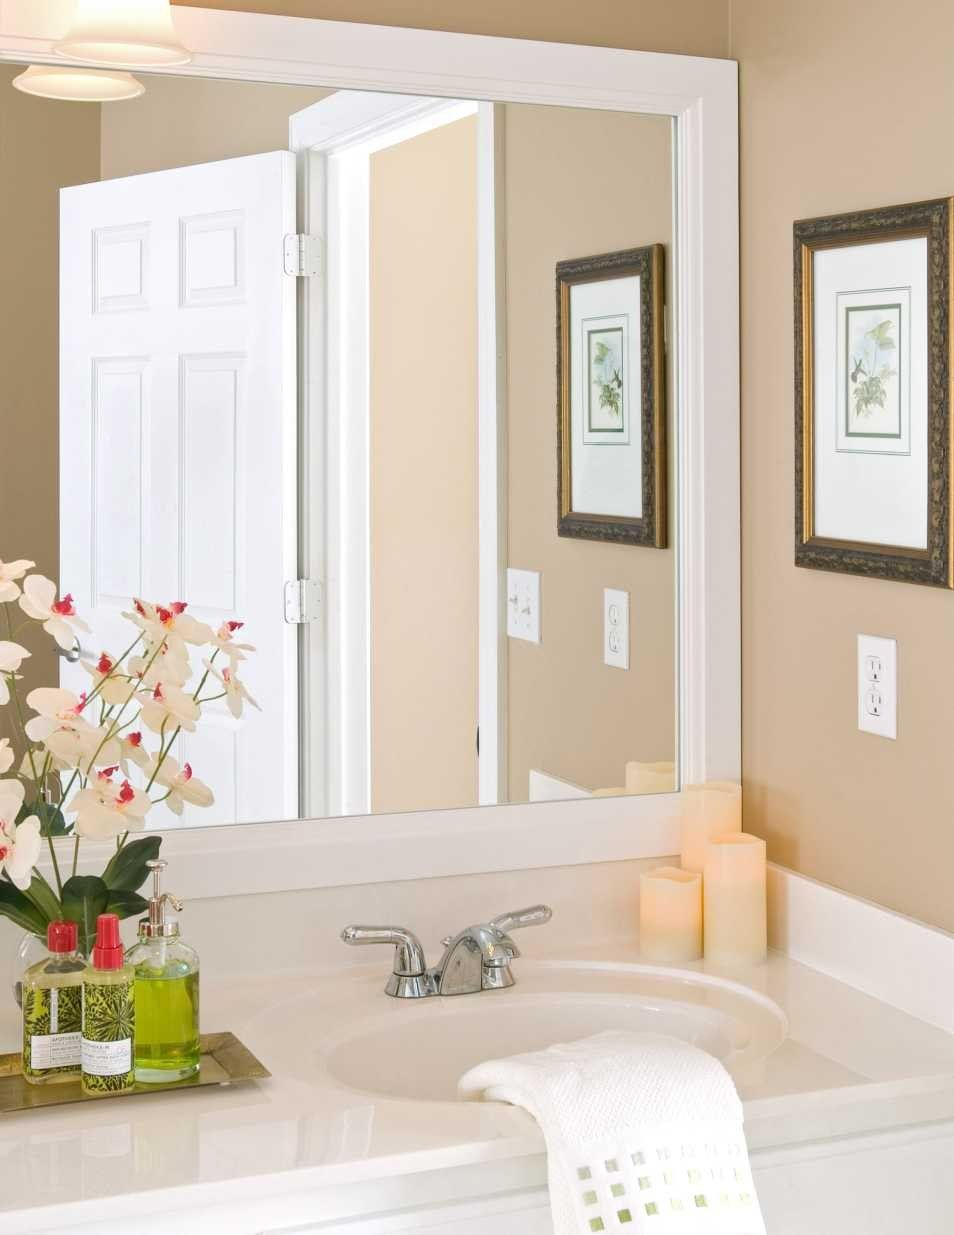 Our Durham Mirror Frames Will Dress Up A Bathroom Bedroom Or Other With Custom Add On DIY Frame